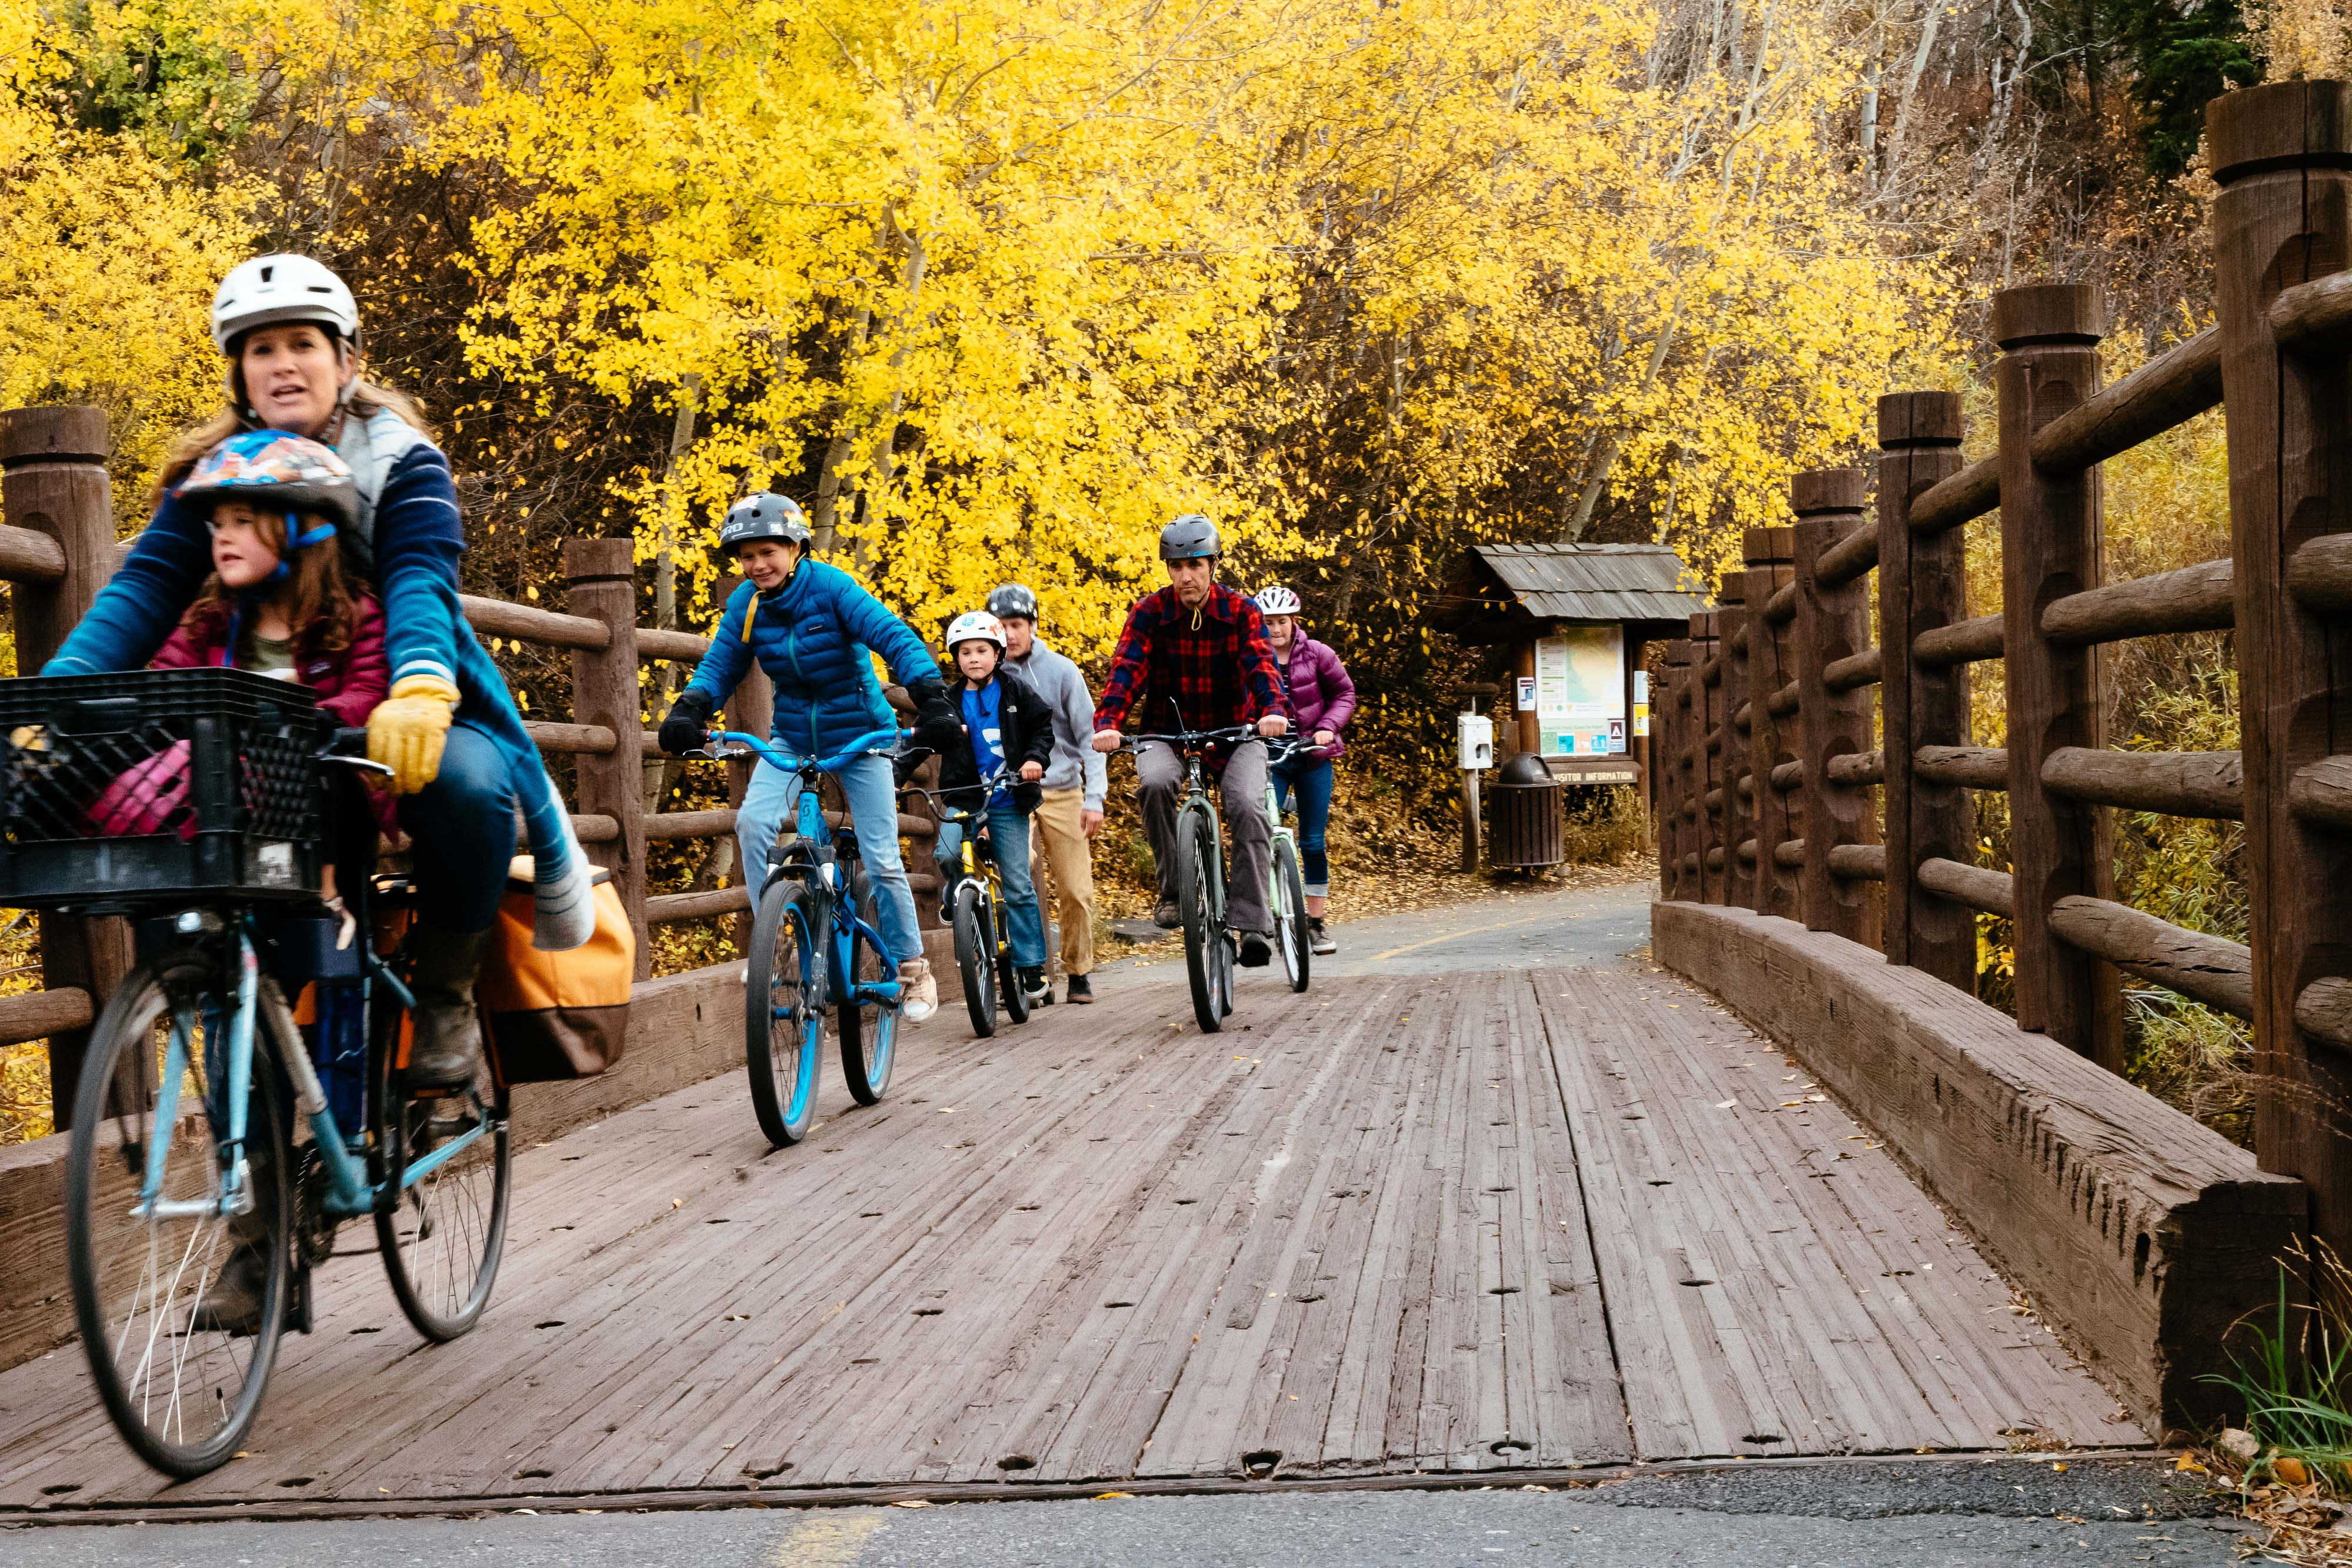 Friends of Pathways Commission - autumn bike path photo - by Jay Goodrich